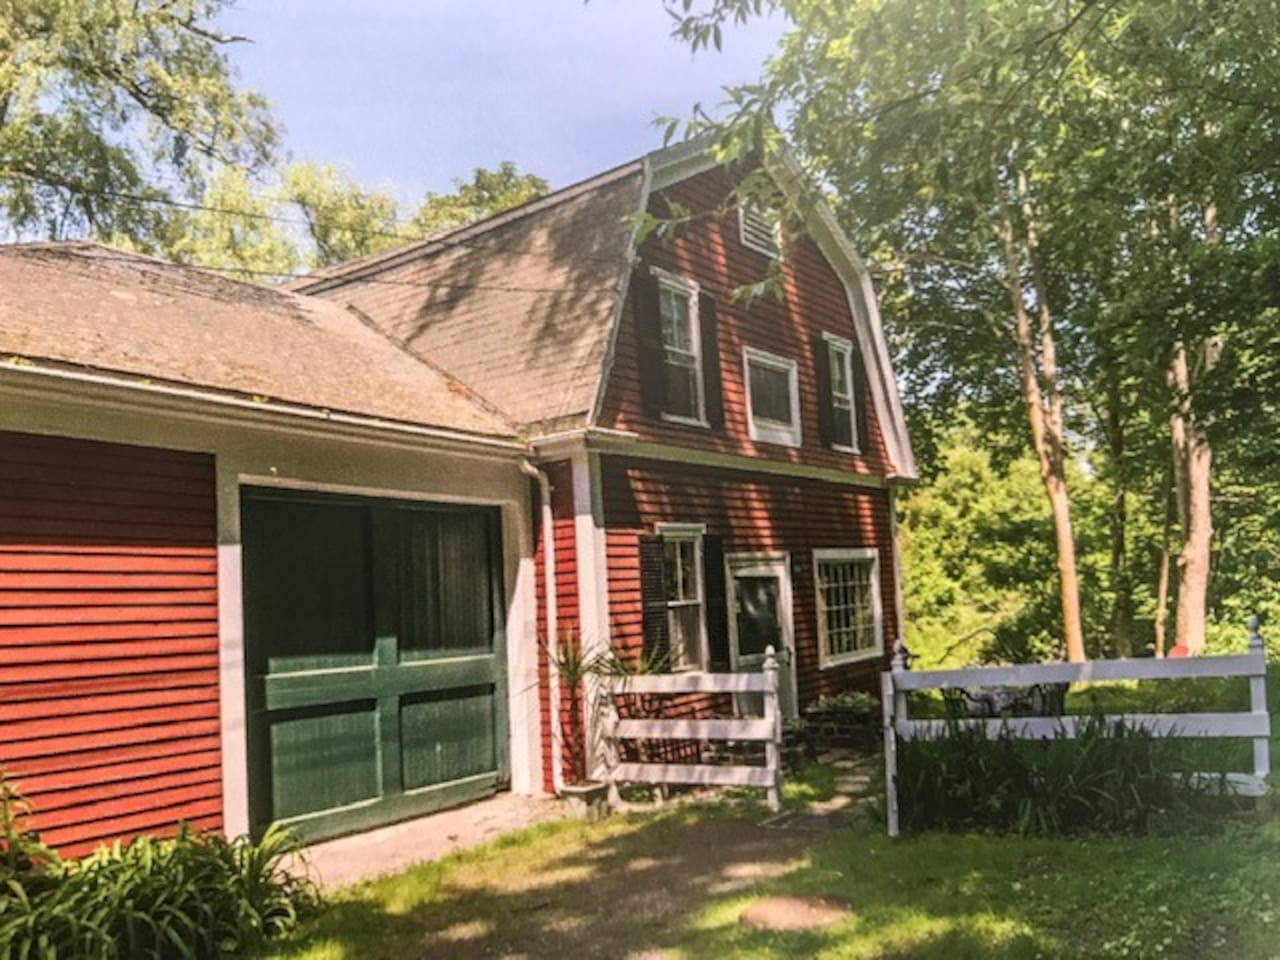 This charming barn is located in one of the best areas in Manchester by the Sea. Your walk to the Harbor down the street is breathtaking. The two-story barn inside the gate is all yours. It is filled with peace.